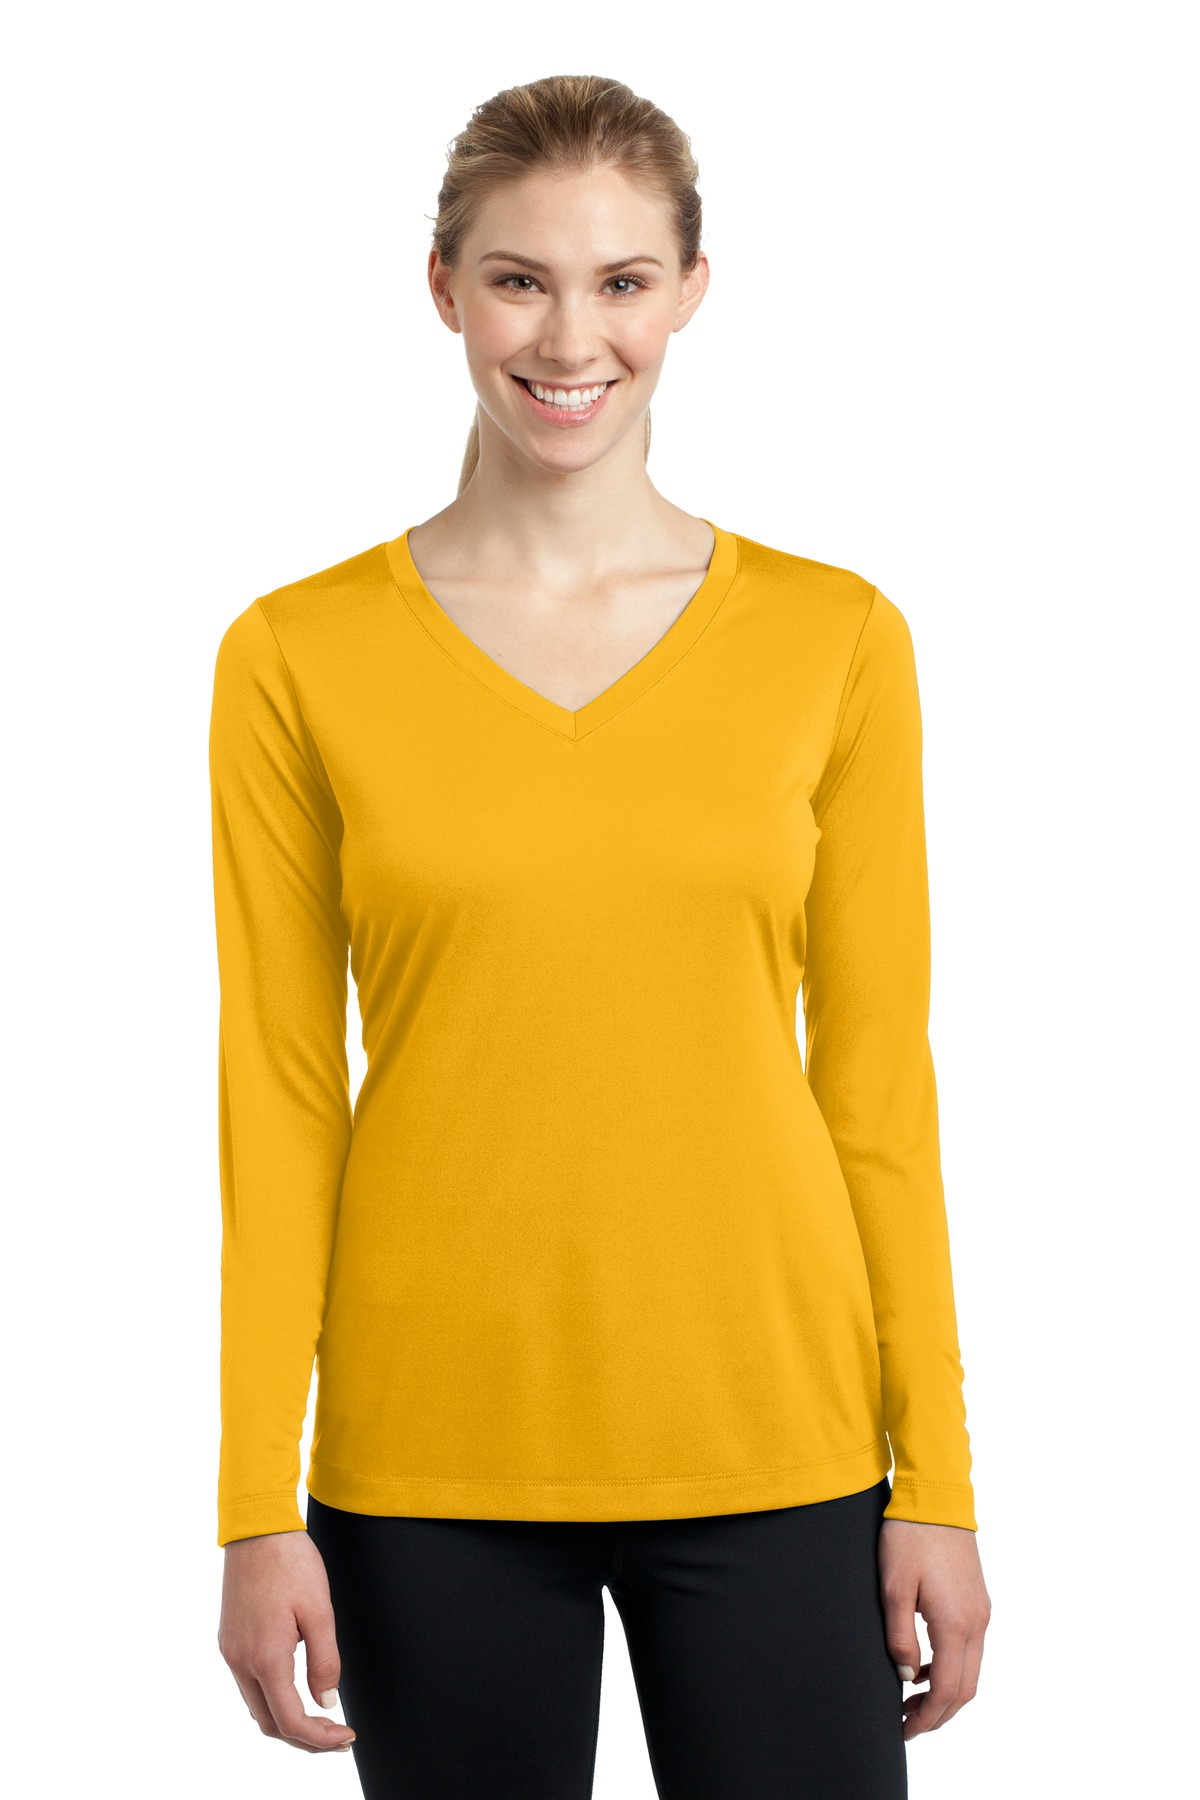 Sport-Tek ®  Ladies Long Sleeve PosiCharge ®  Competitor™ V-Neck Tee. LST353LS - Gold